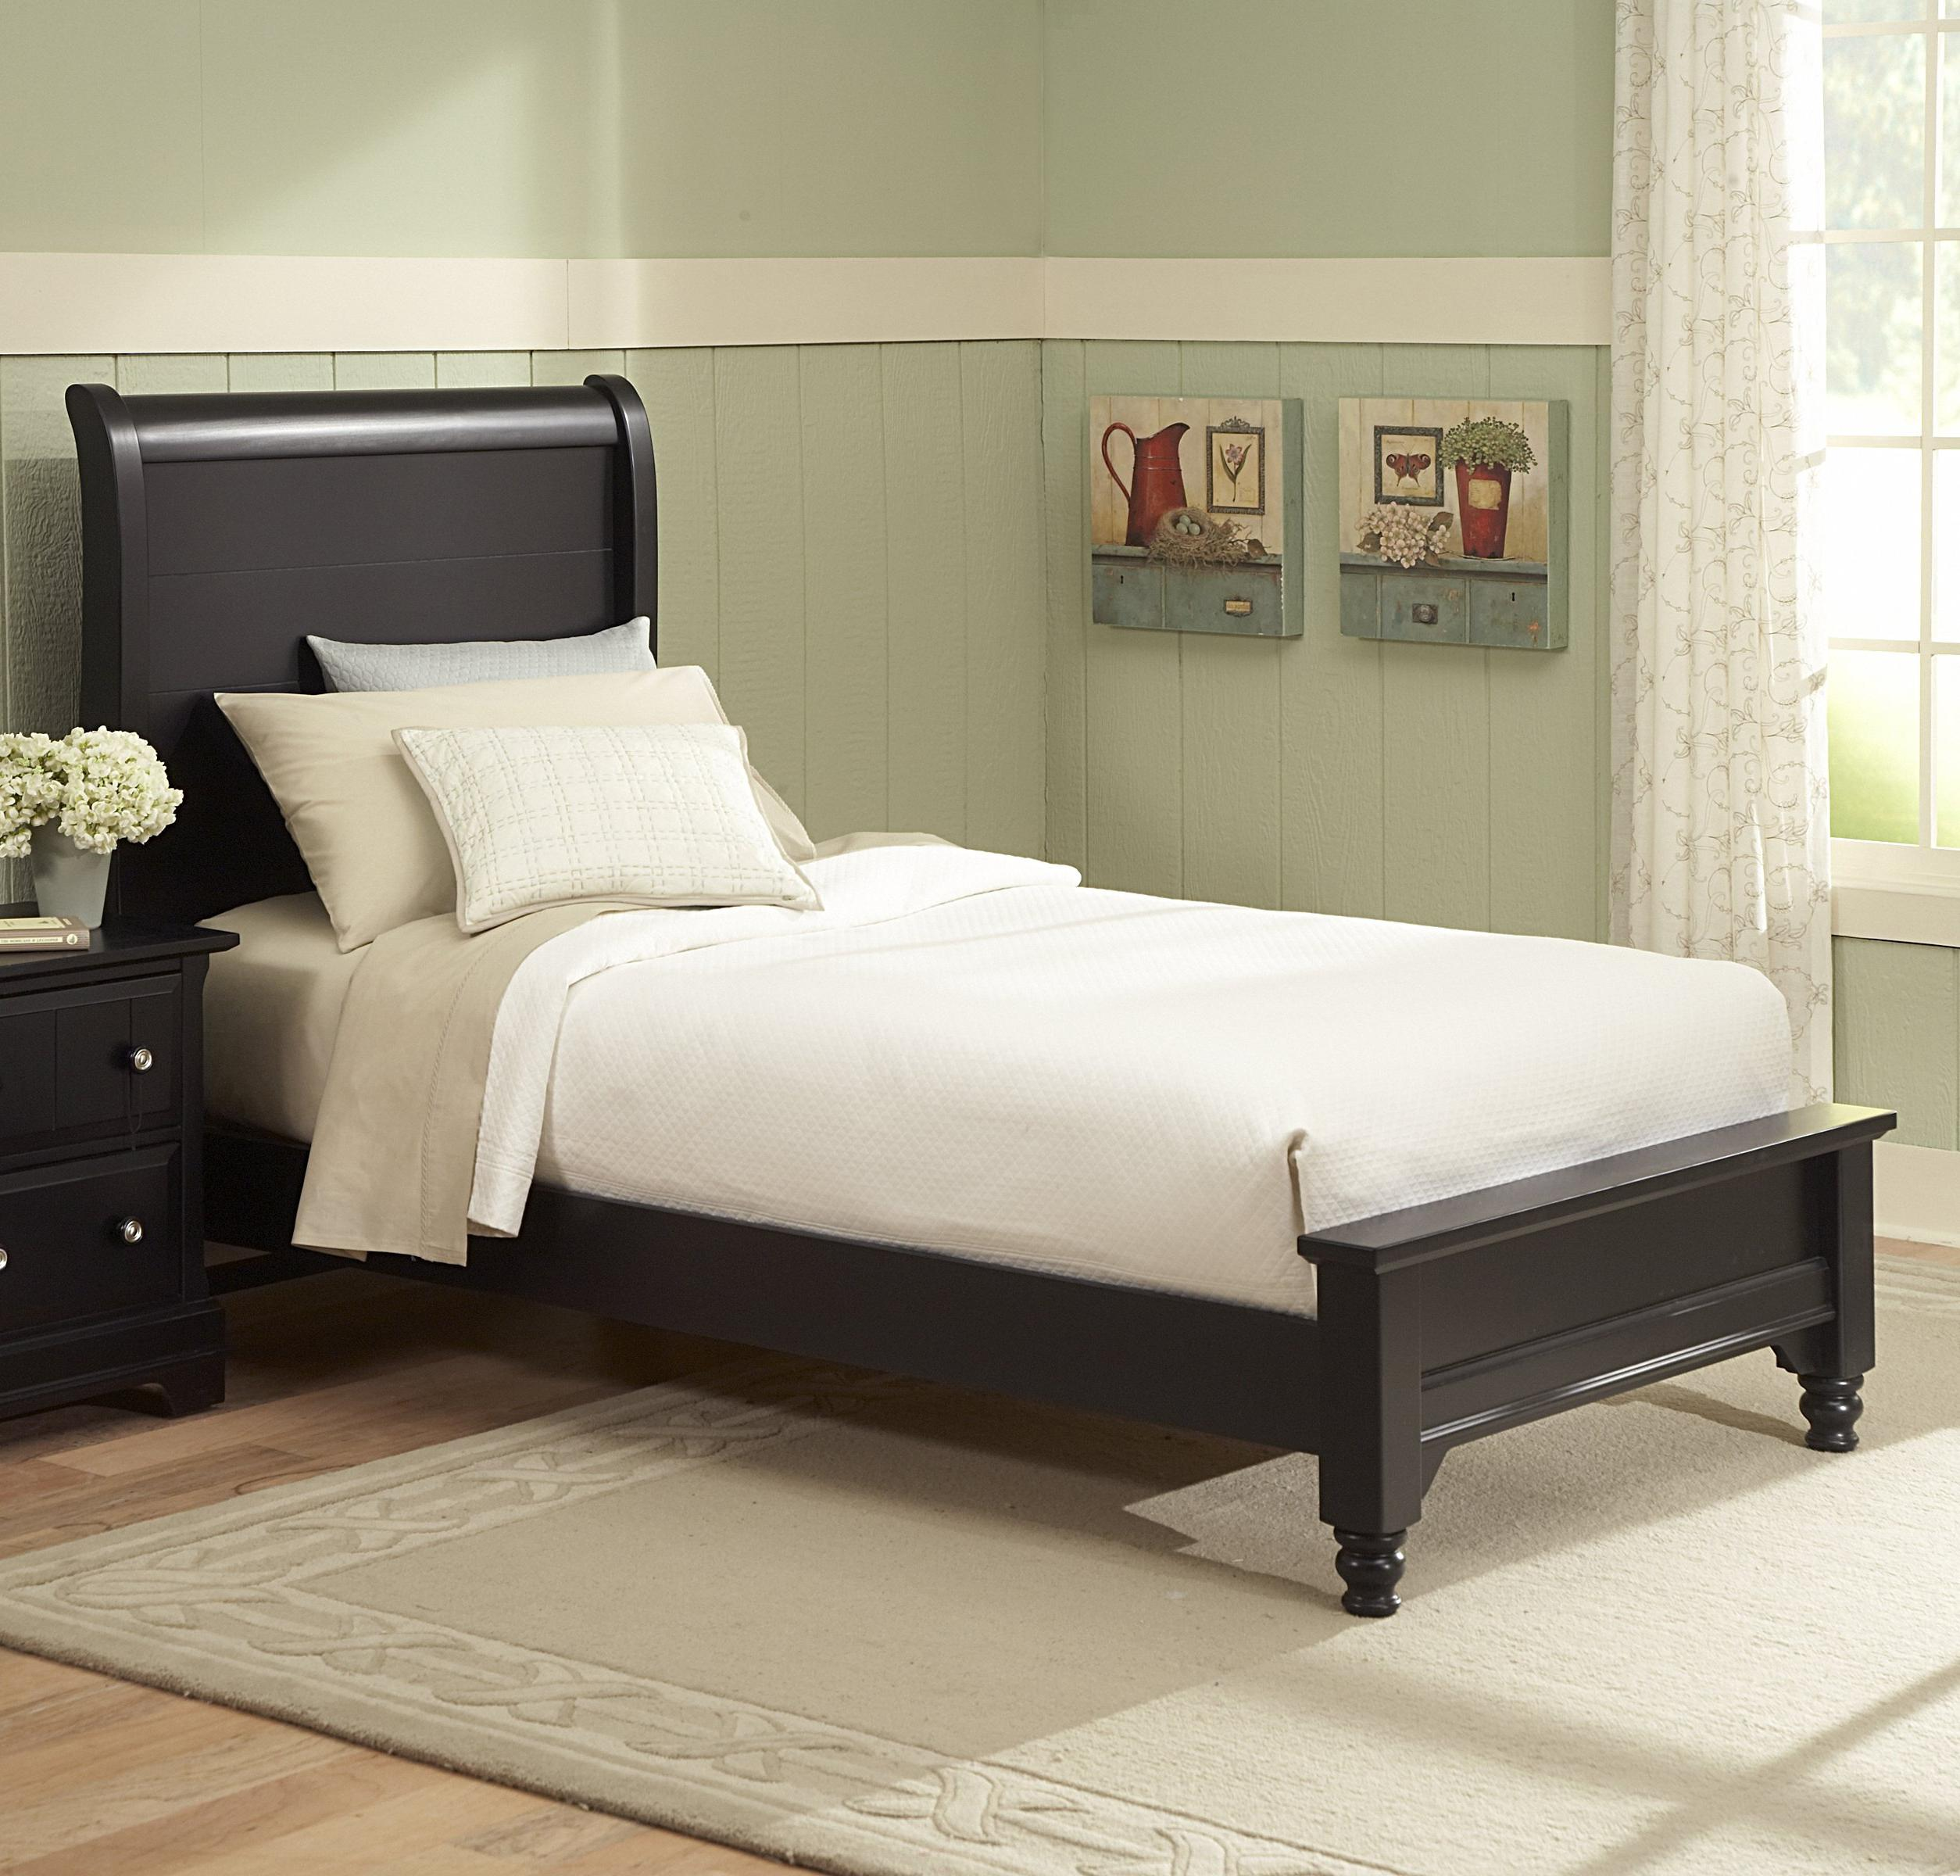 King Sleigh Bed w/ Low Footboard